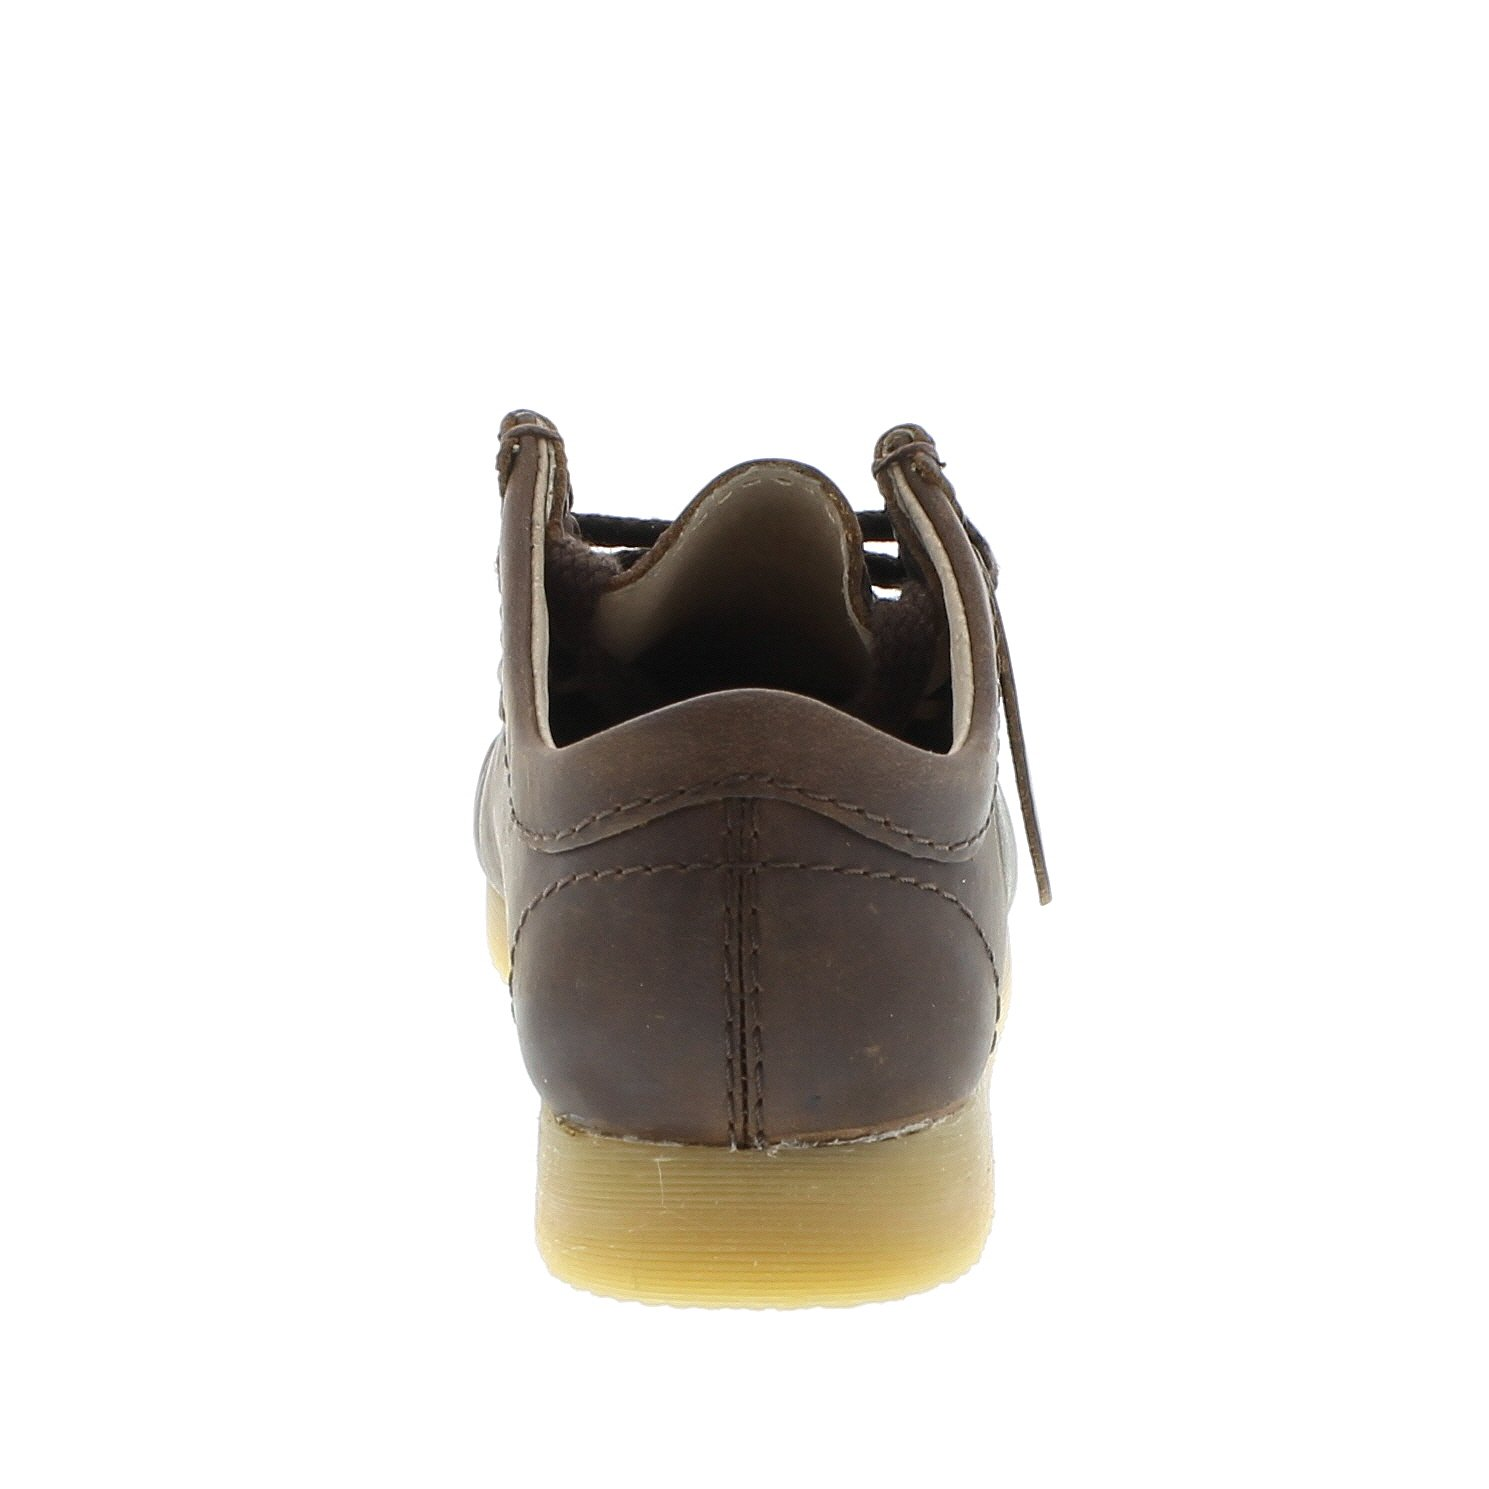 FOOTMATES Wally Low Wallabee Oxford Brown Oiled - 9125/12.5 Little Kid M/W by FOOTMATES (Image #7)